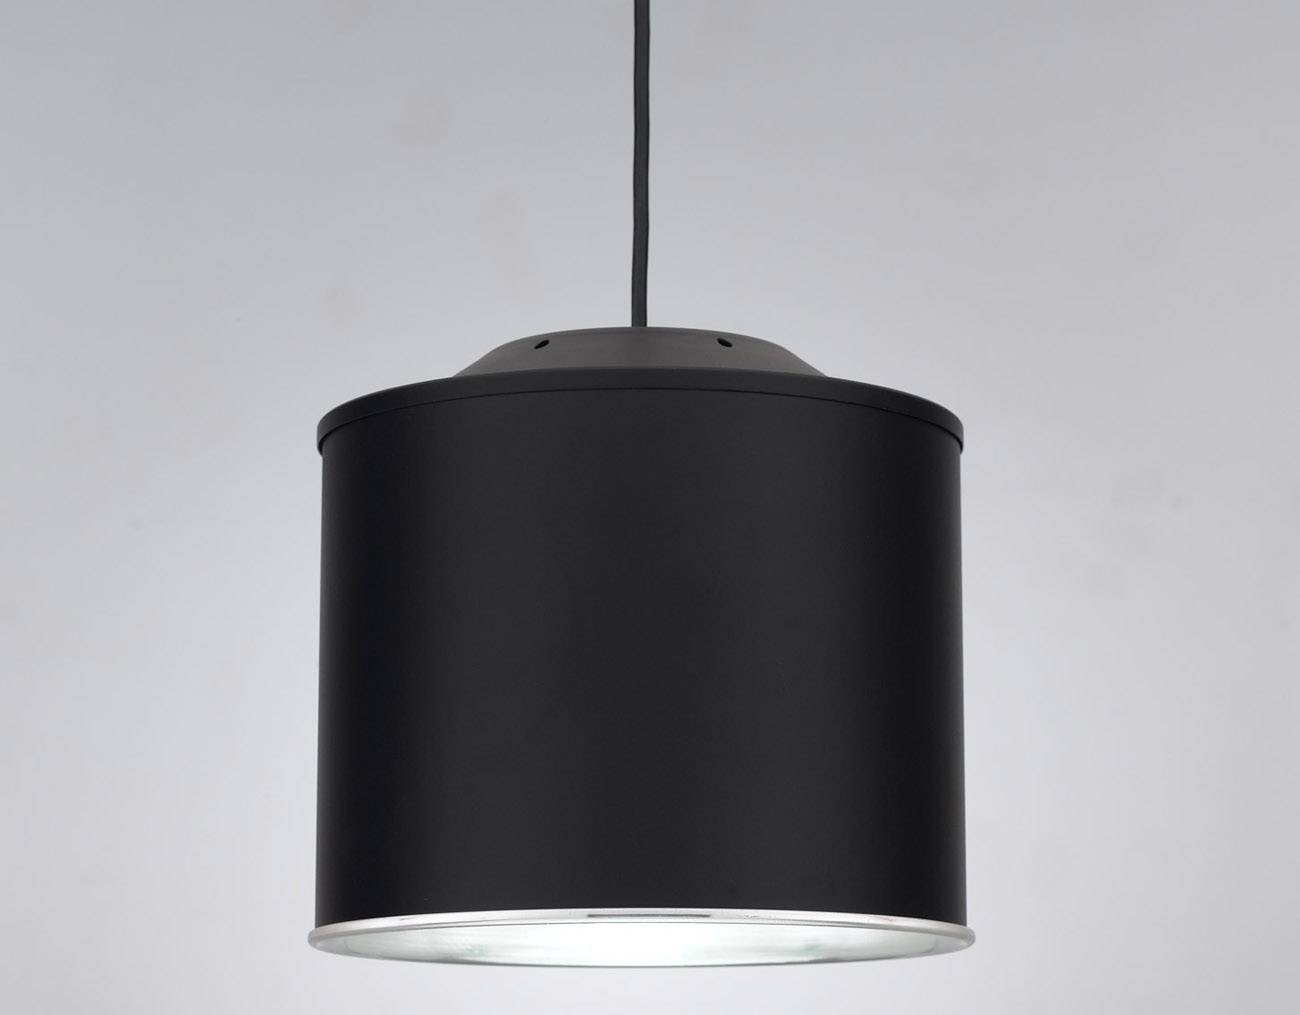 Pendant Lightinghi-Lite Mfg | Cylinder Ceiling Lights with Commercial Pendant Light Fixtures (Image 13 of 15)